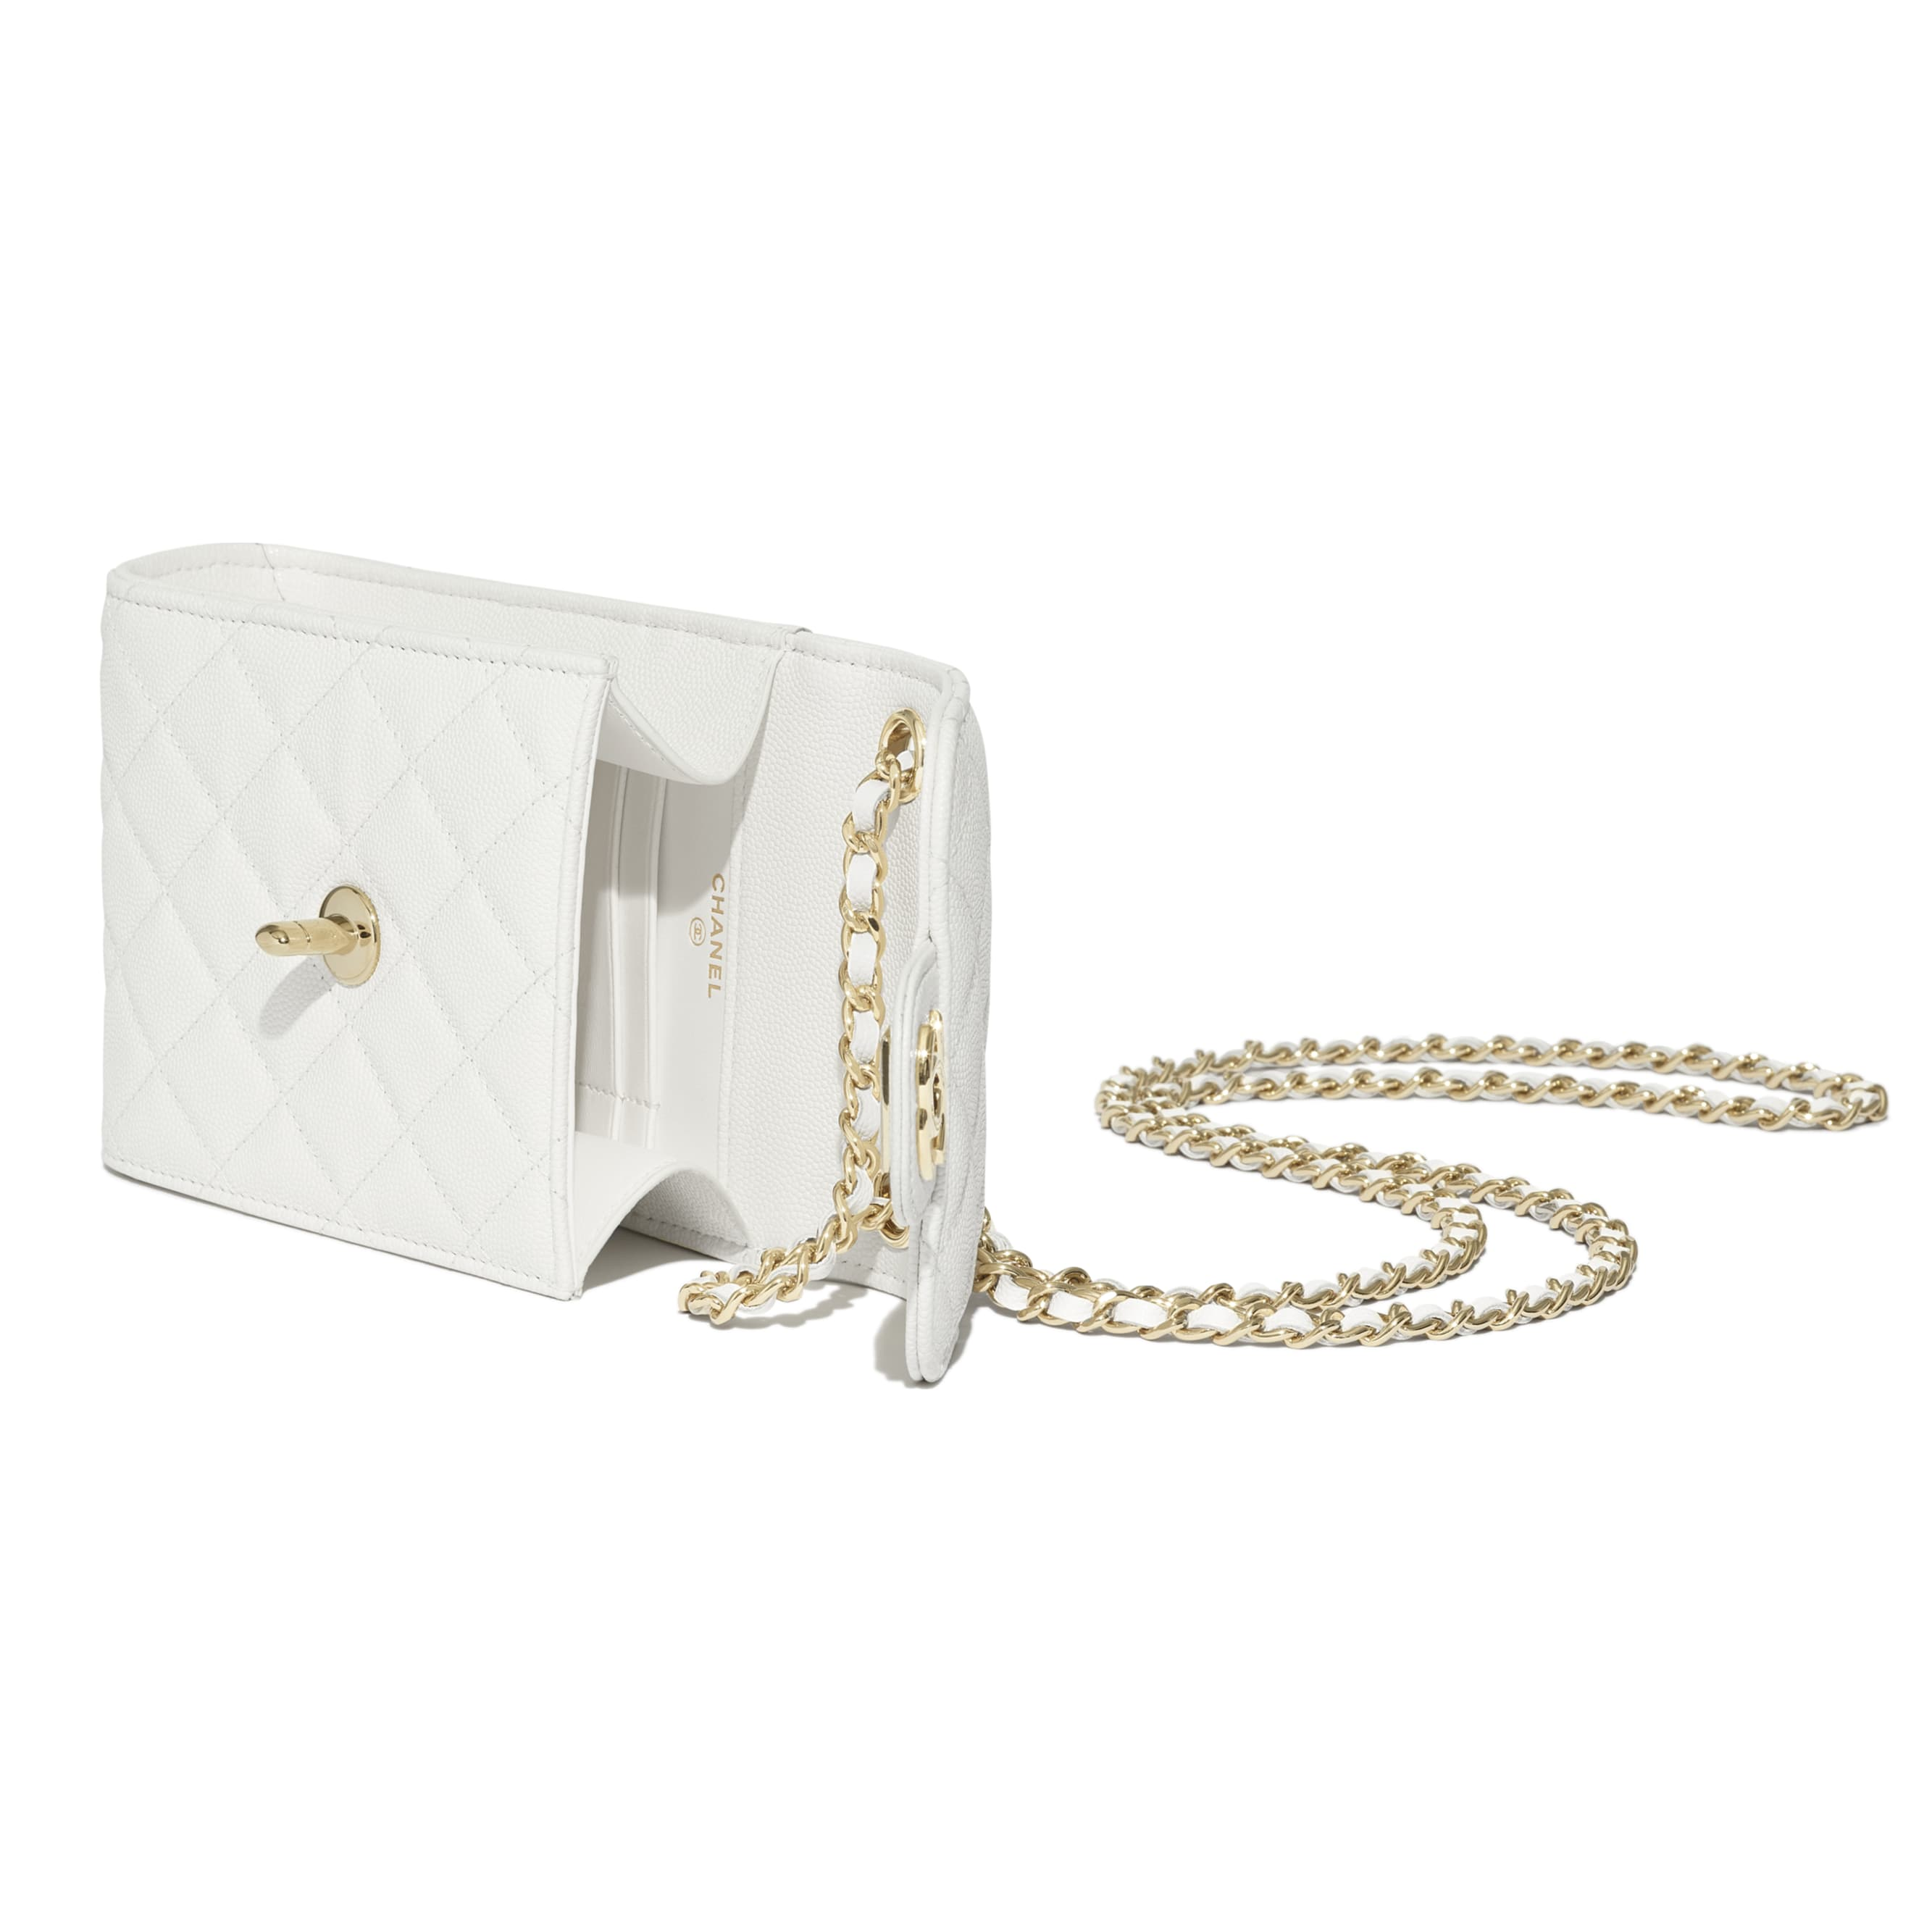 Classic Clutch With Chain - White - Grained Calfskin & Gold-Tone Metal - CHANEL - Extra view - see standard sized version